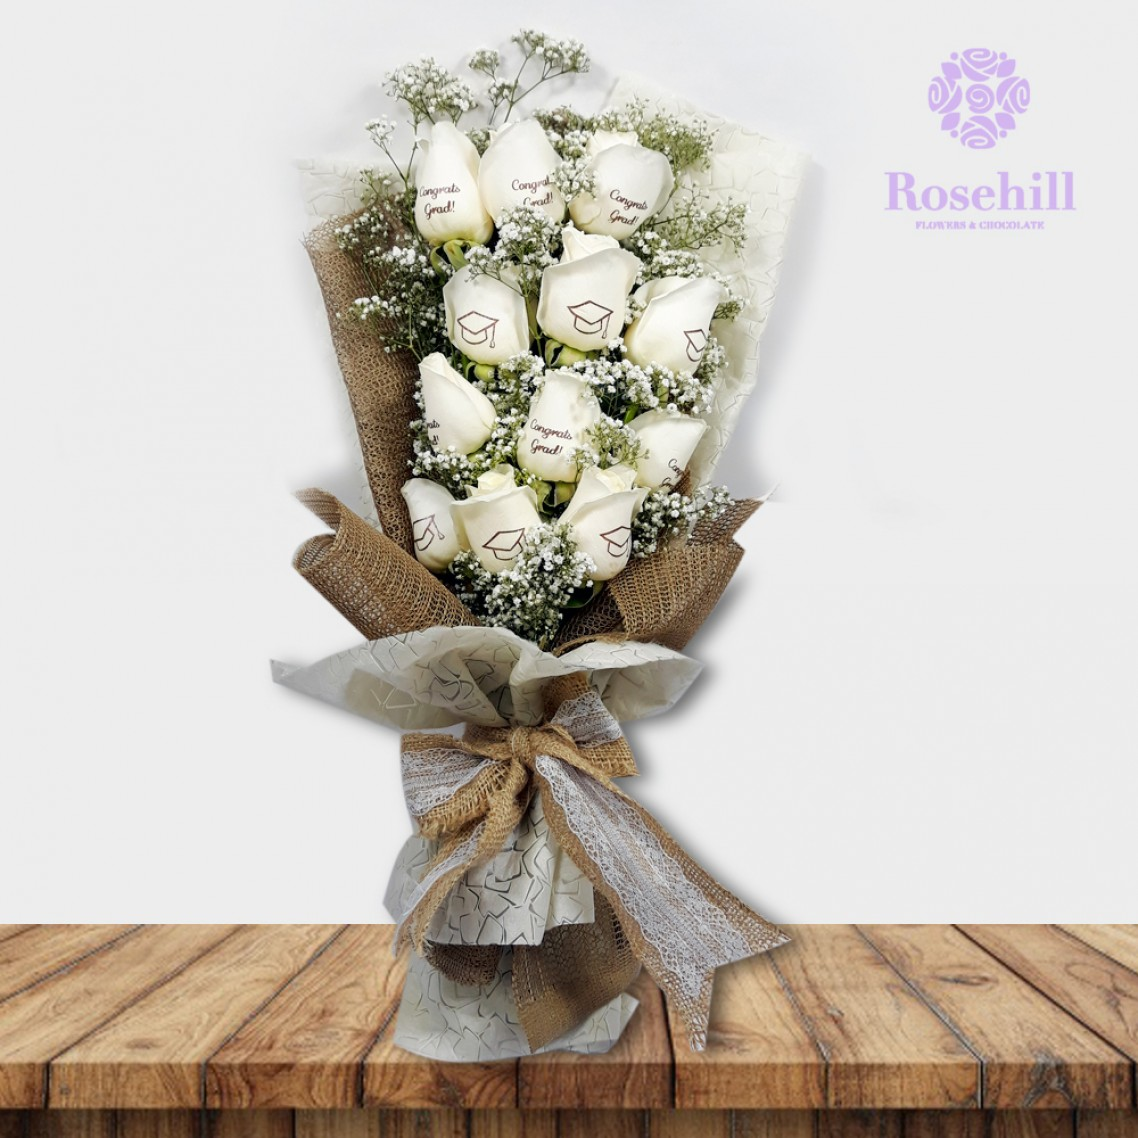 1524674156-h-250-_Rosehill's Graduate Bouquet with Babys Breath- White.jpg